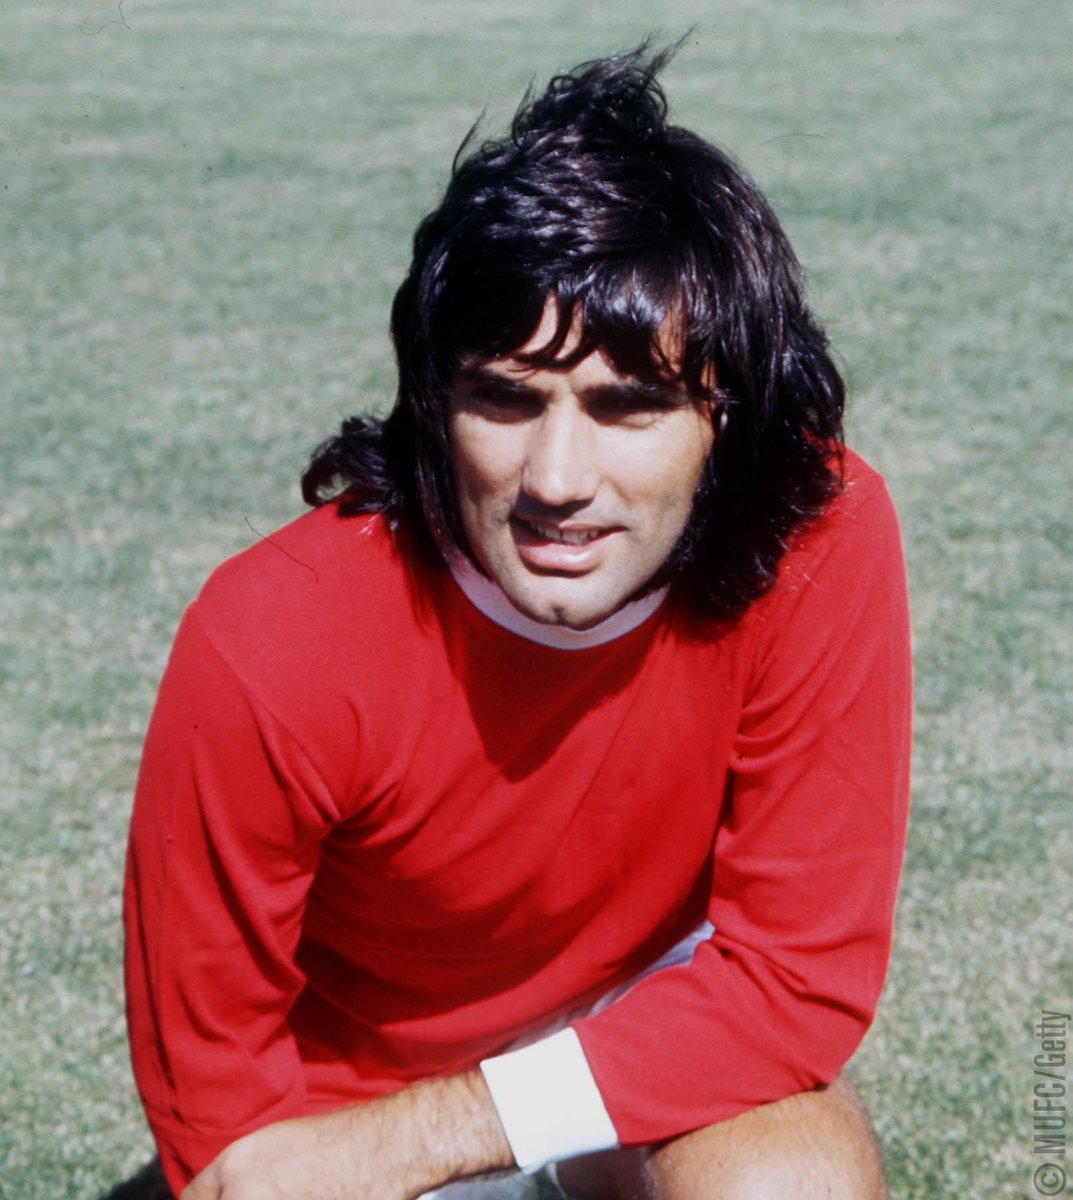 Today, we remember the late, great George Best on what would have been his 73rd birthday.